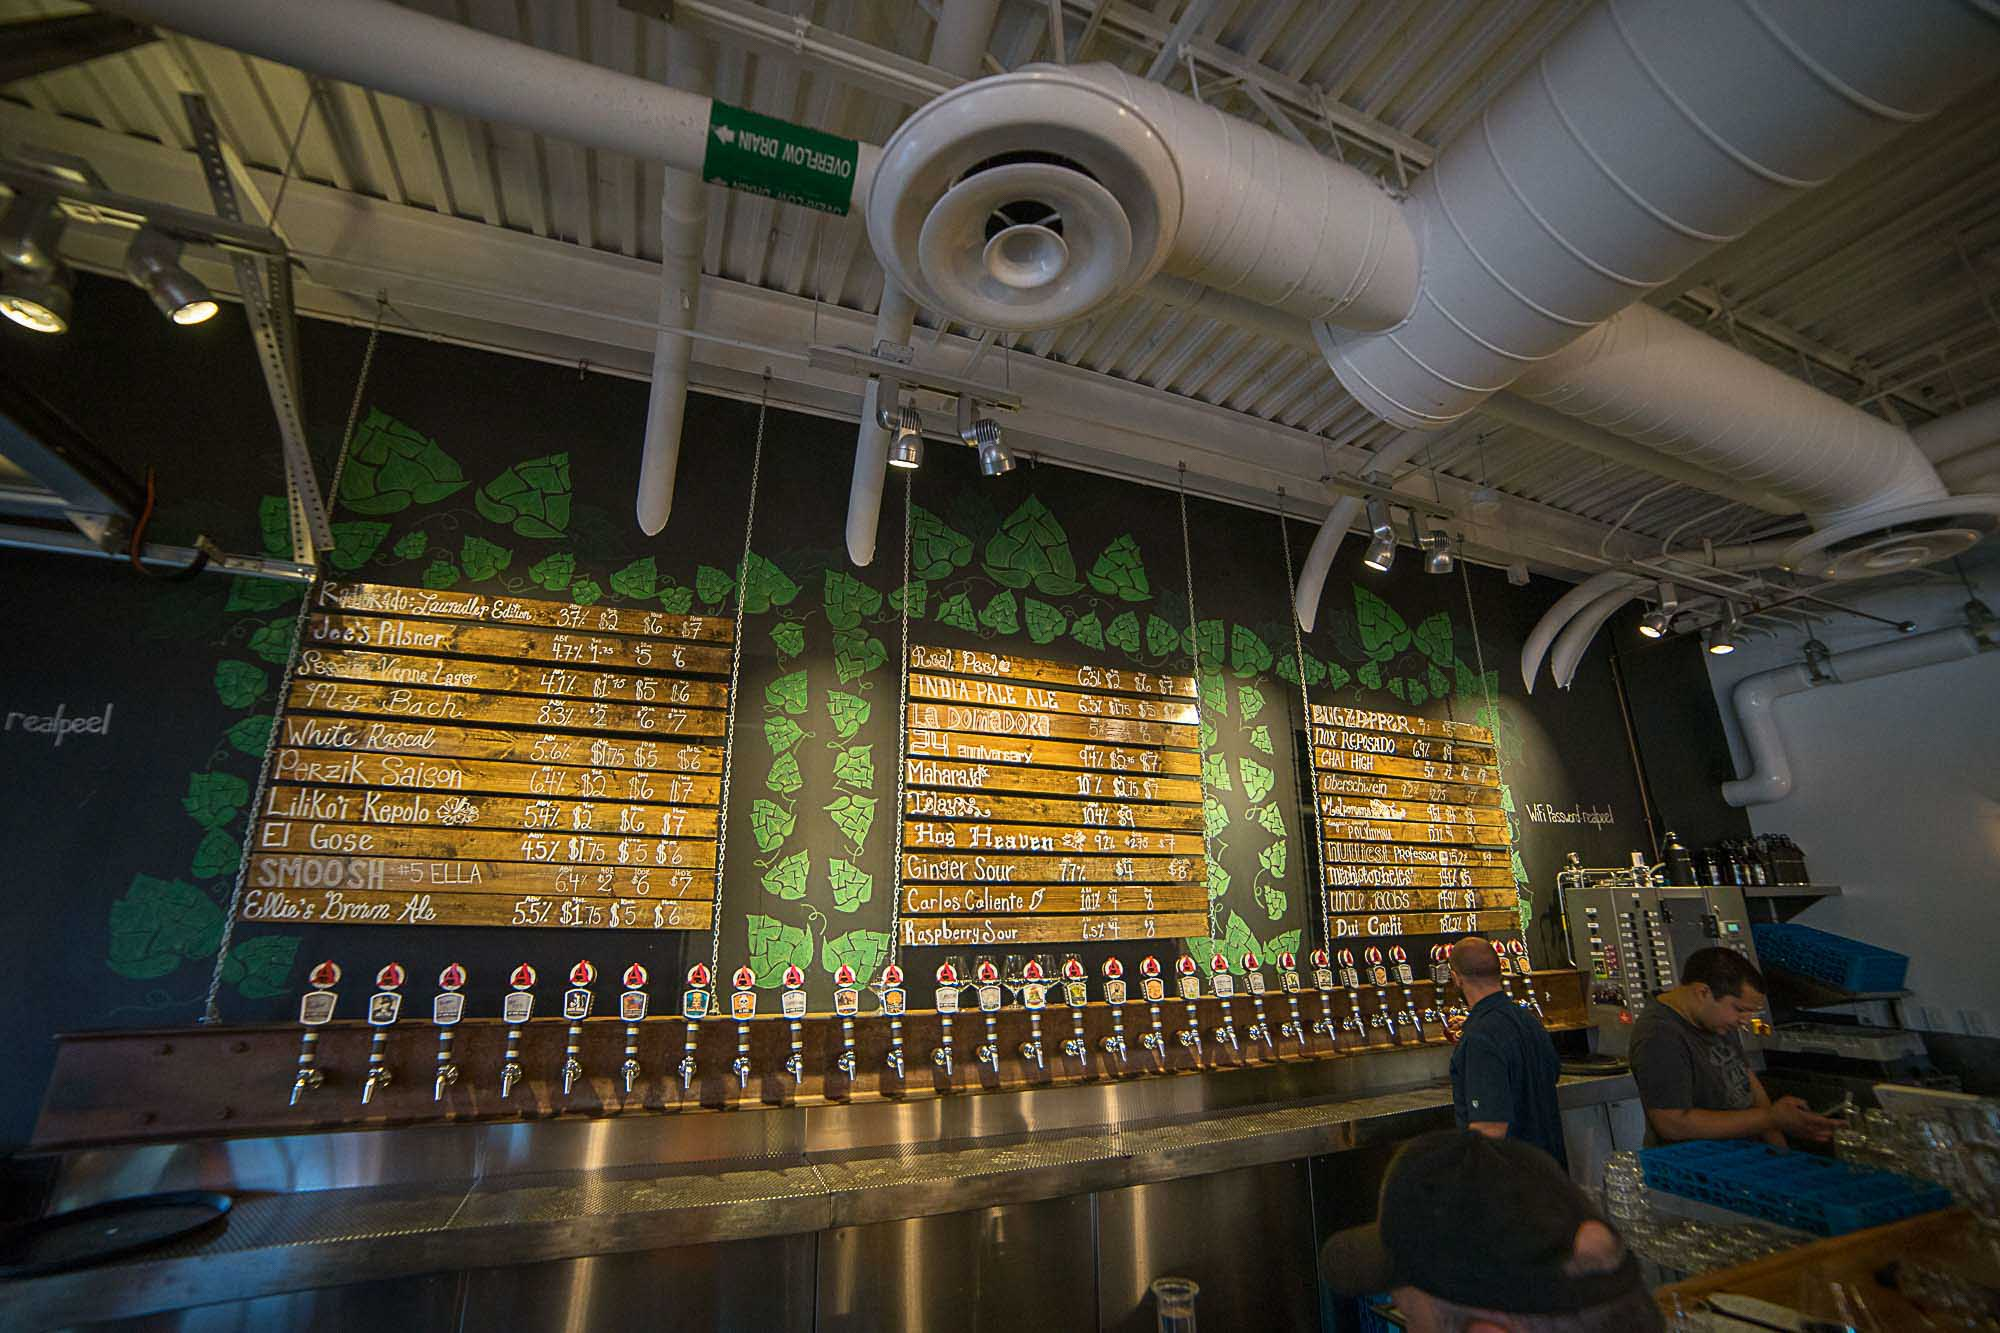 A view of the beer list and tap lines at Avery Brewing in Boulder, Colorado for Dirt Road Travels